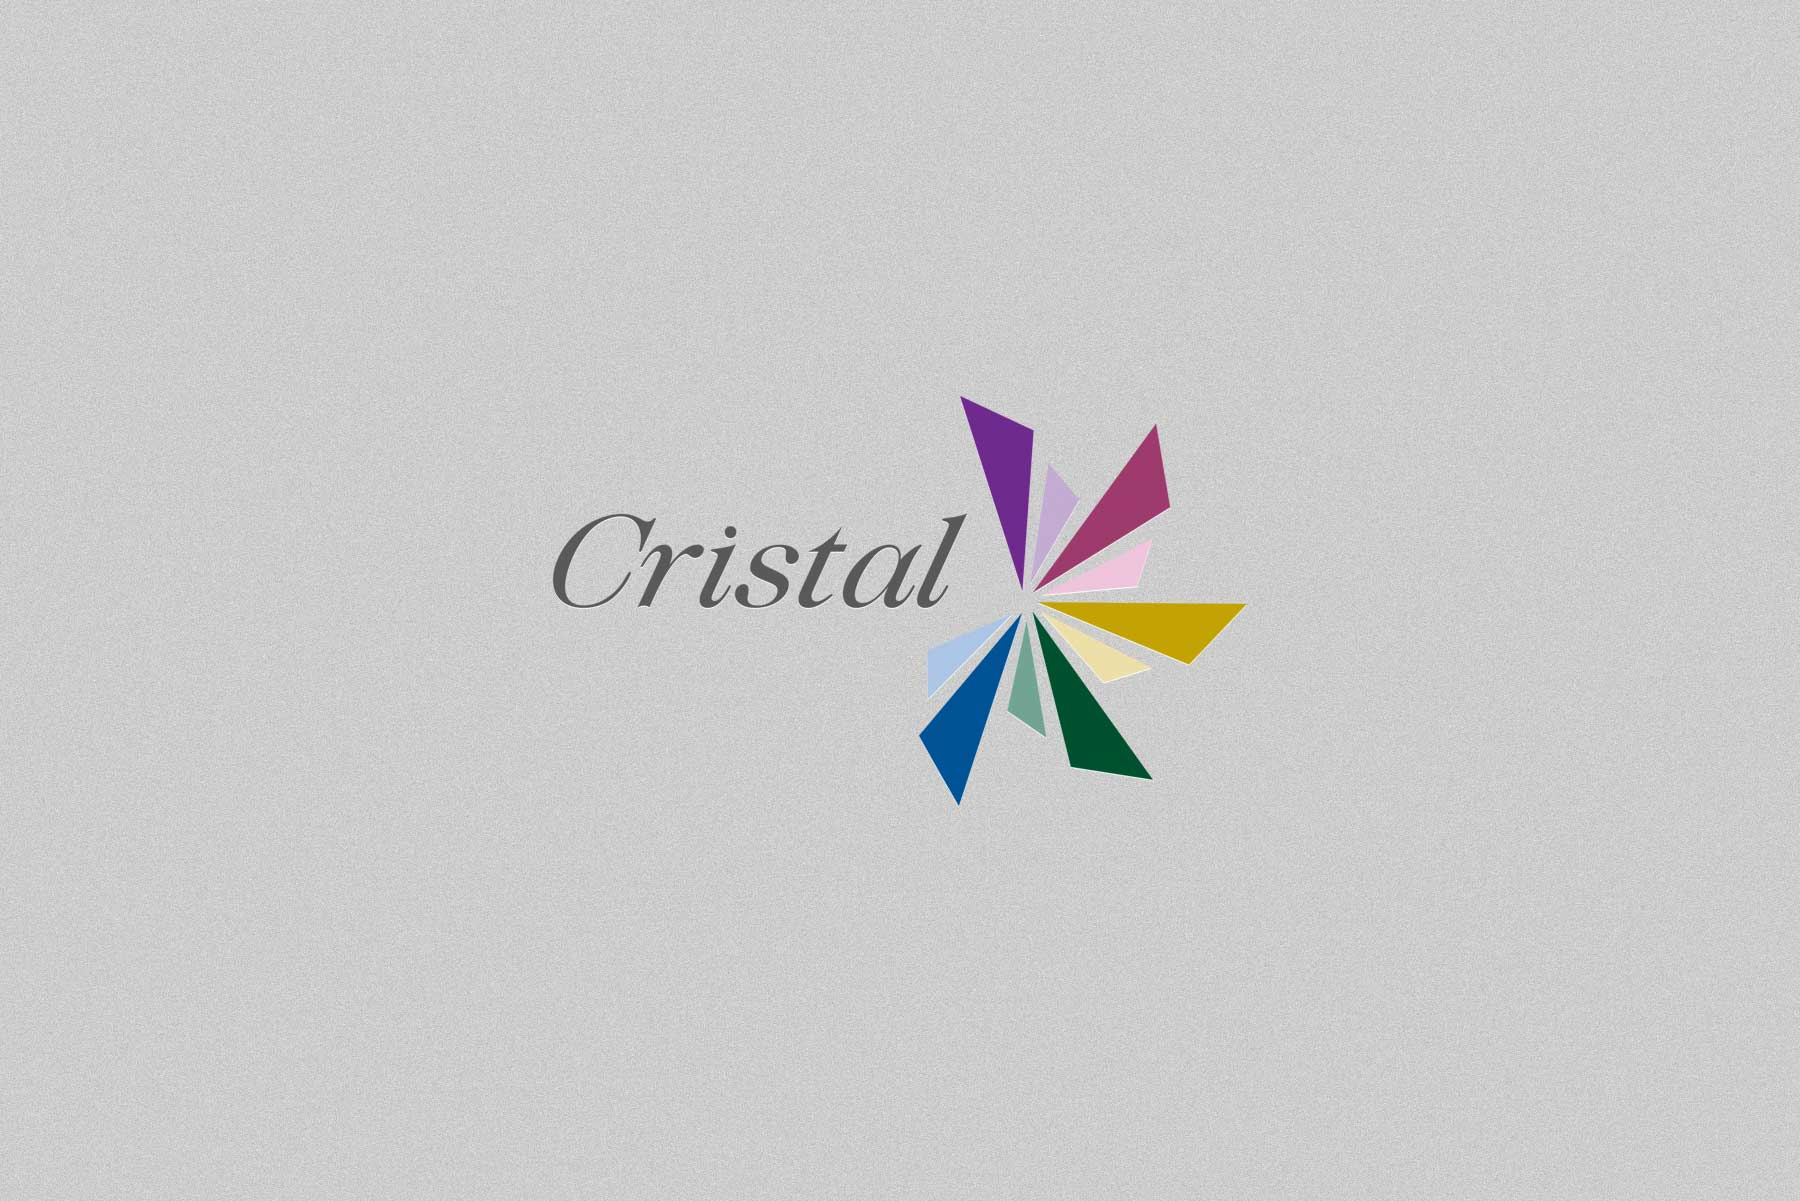 CRISTAL HOTEL AND RESORTS RECOGNISED AS FIRST 'STERLING DESIGN HOTEL' IN MIDDLE EAST